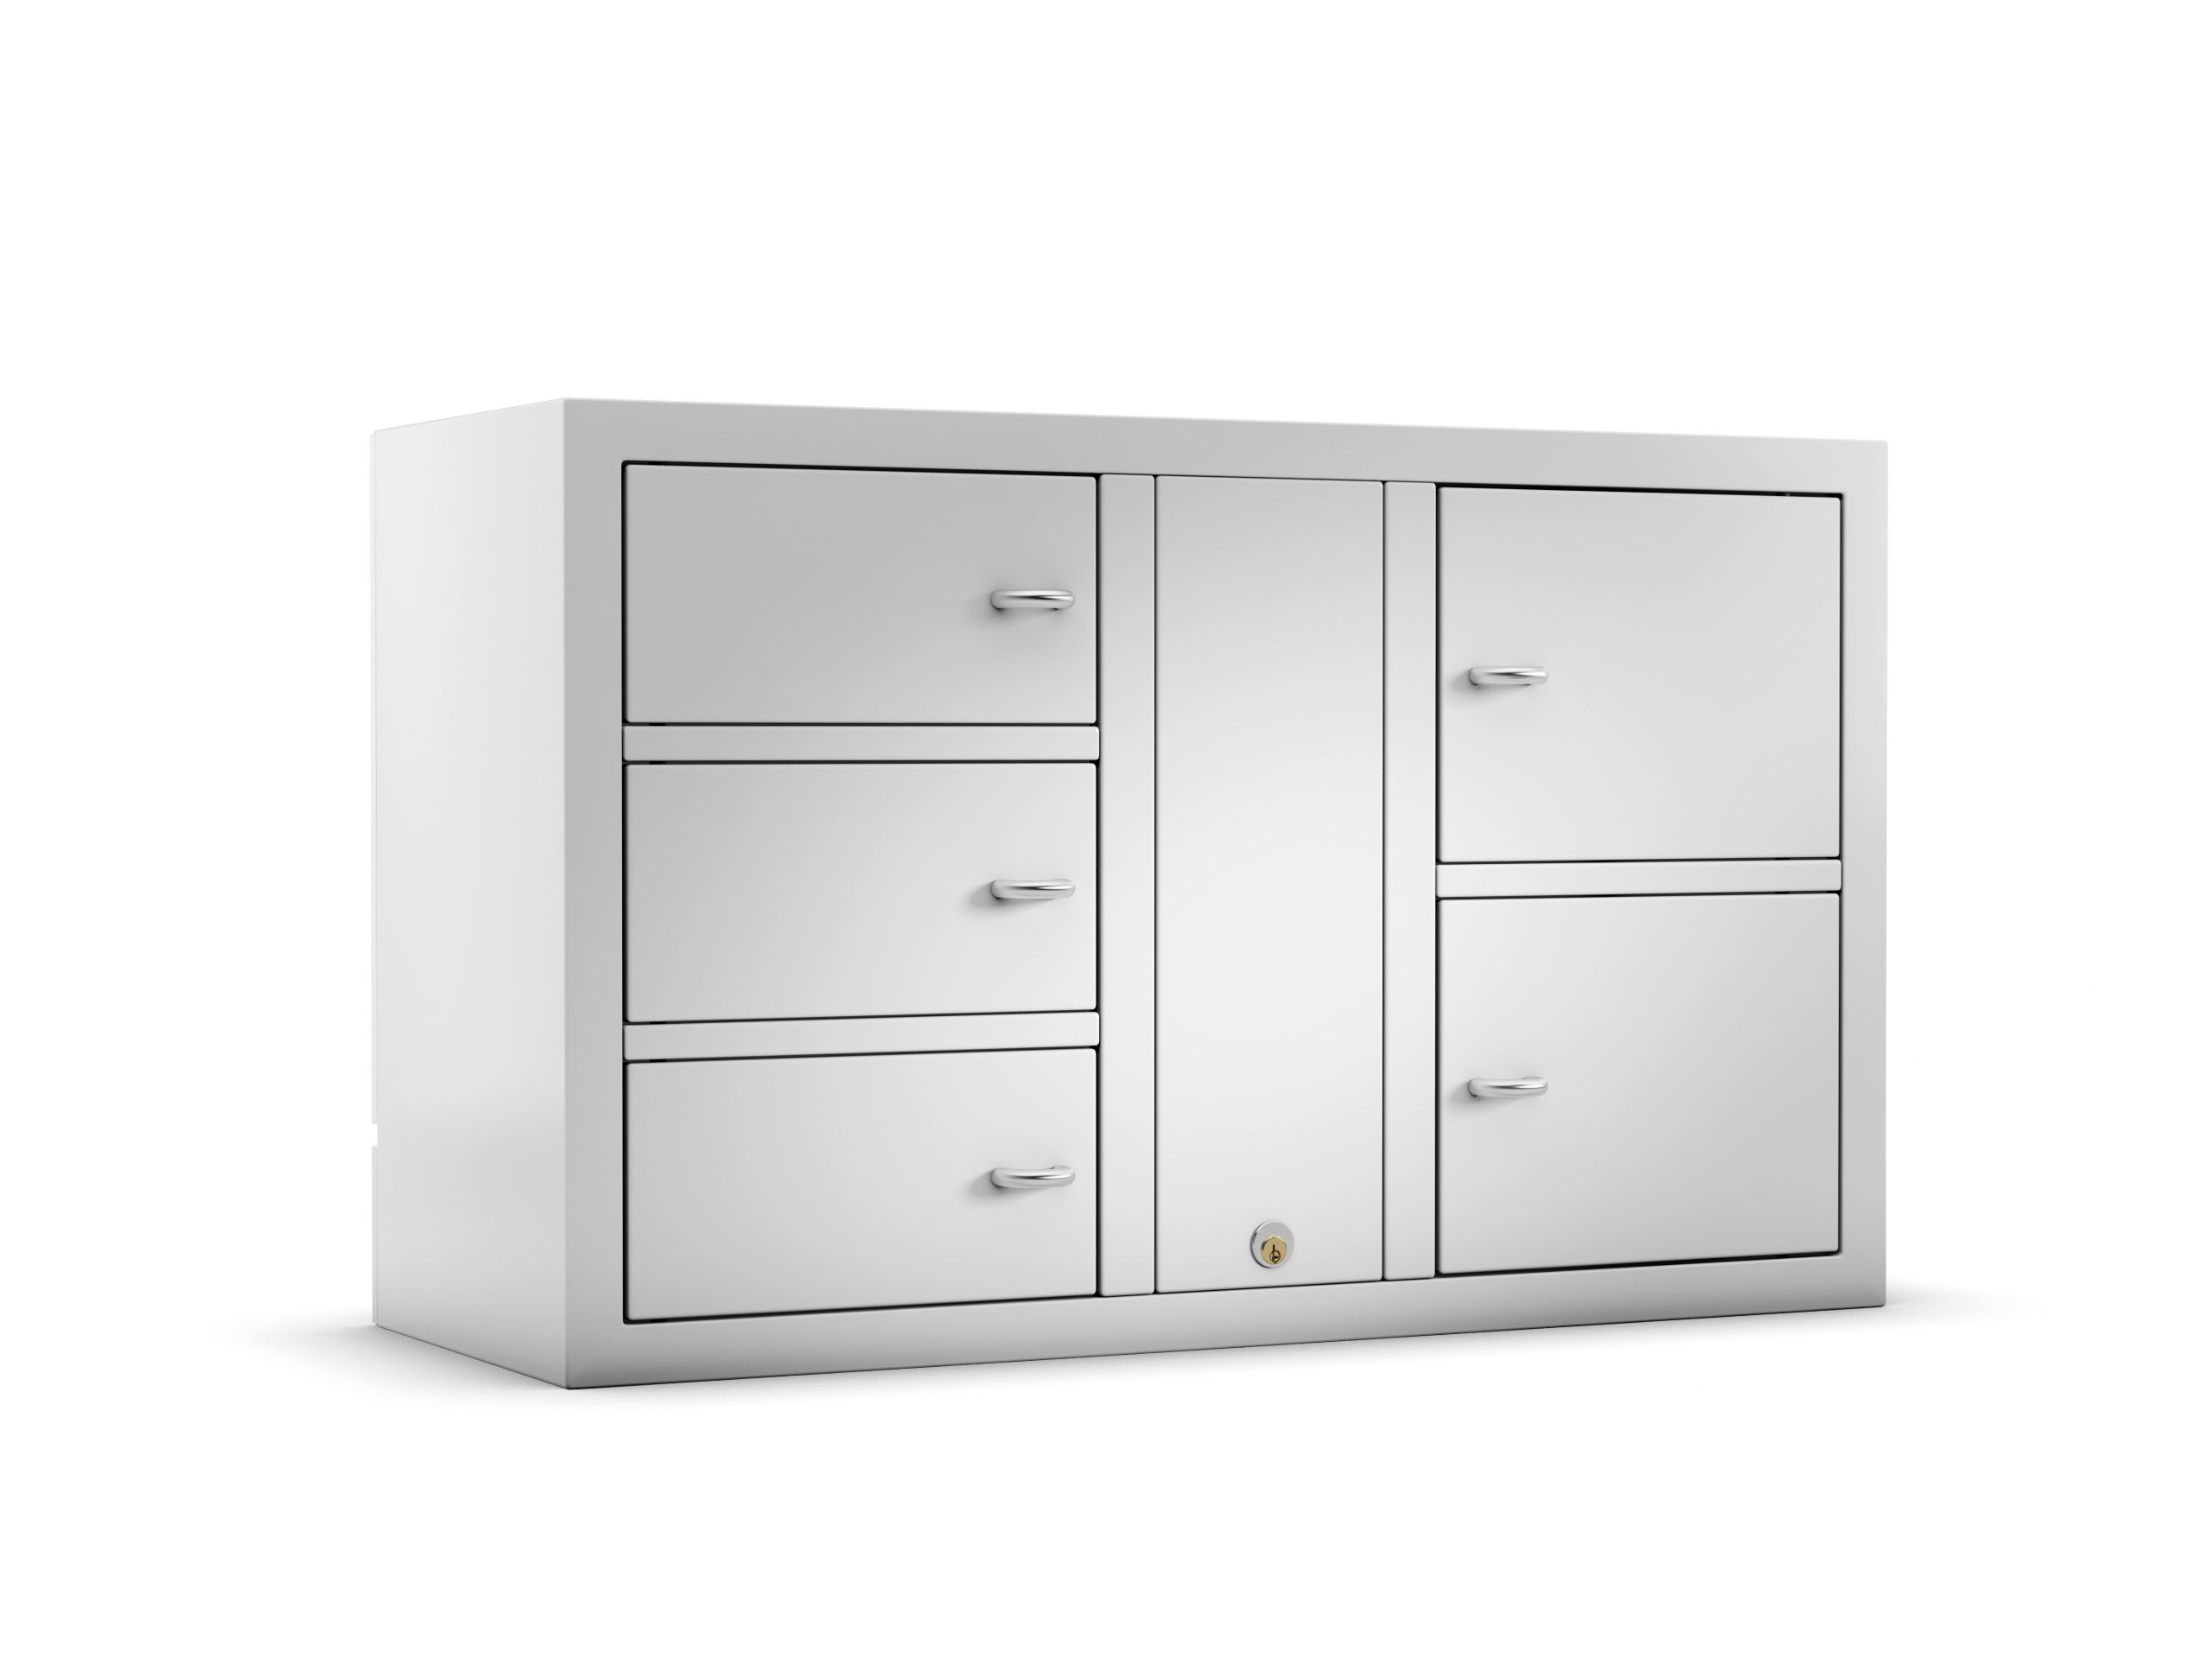 Valuables cabinet 7005 E in the Expansion series with 3 smaller doors and 2 larger doors